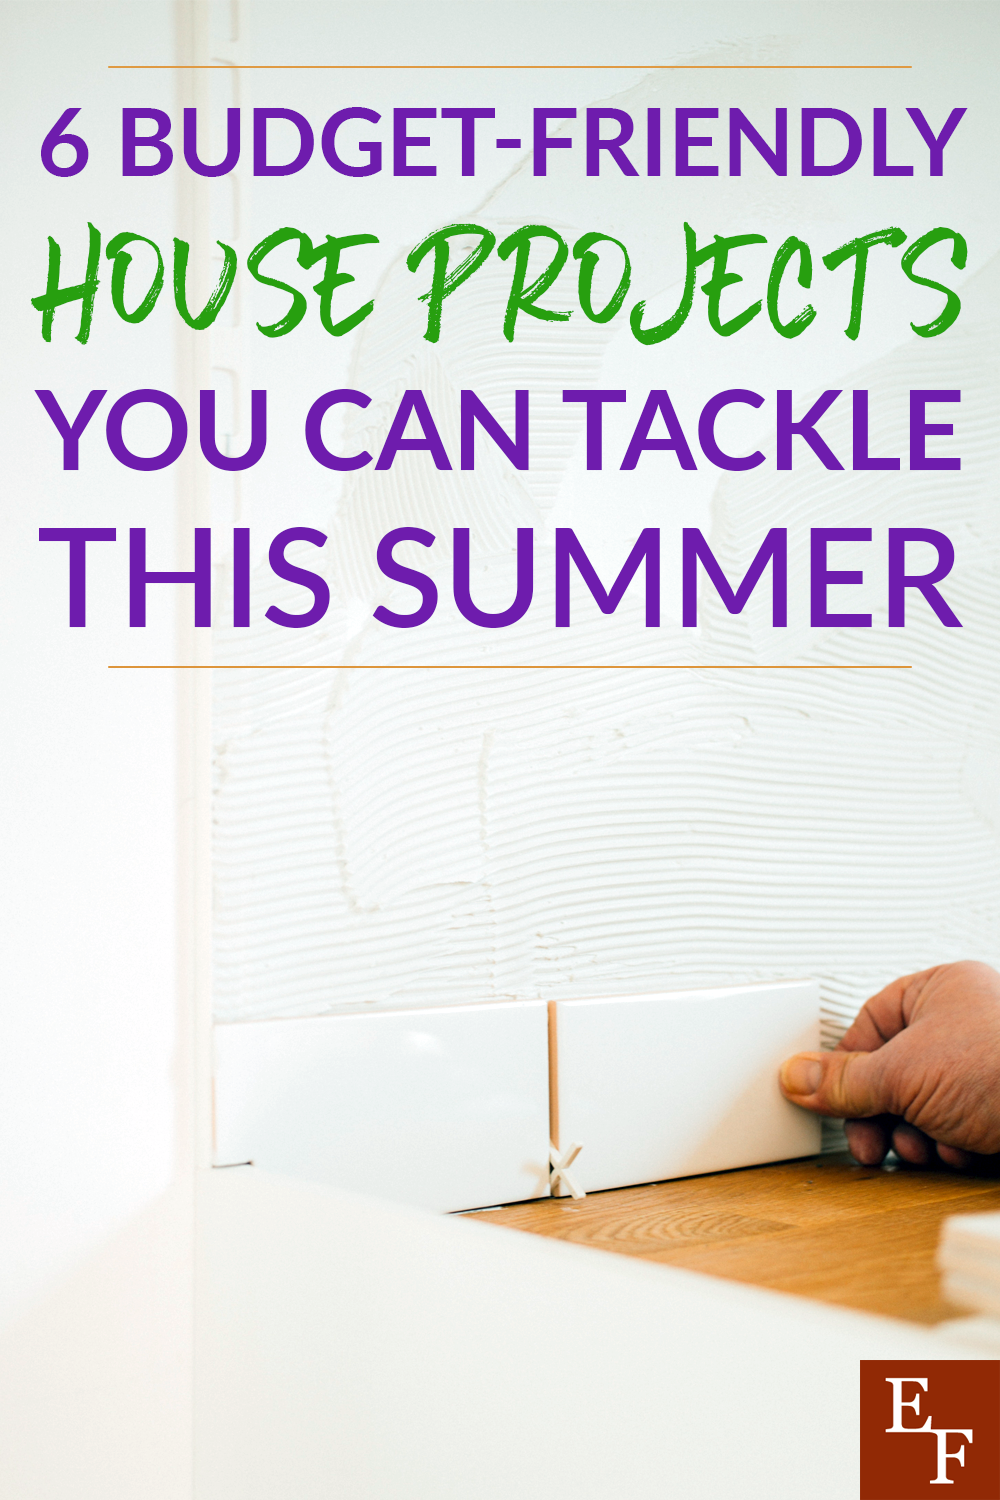 Summer is a time to not only do some cleaning, but also try and tackle some budget friendly house projects. Here is what we're doing!